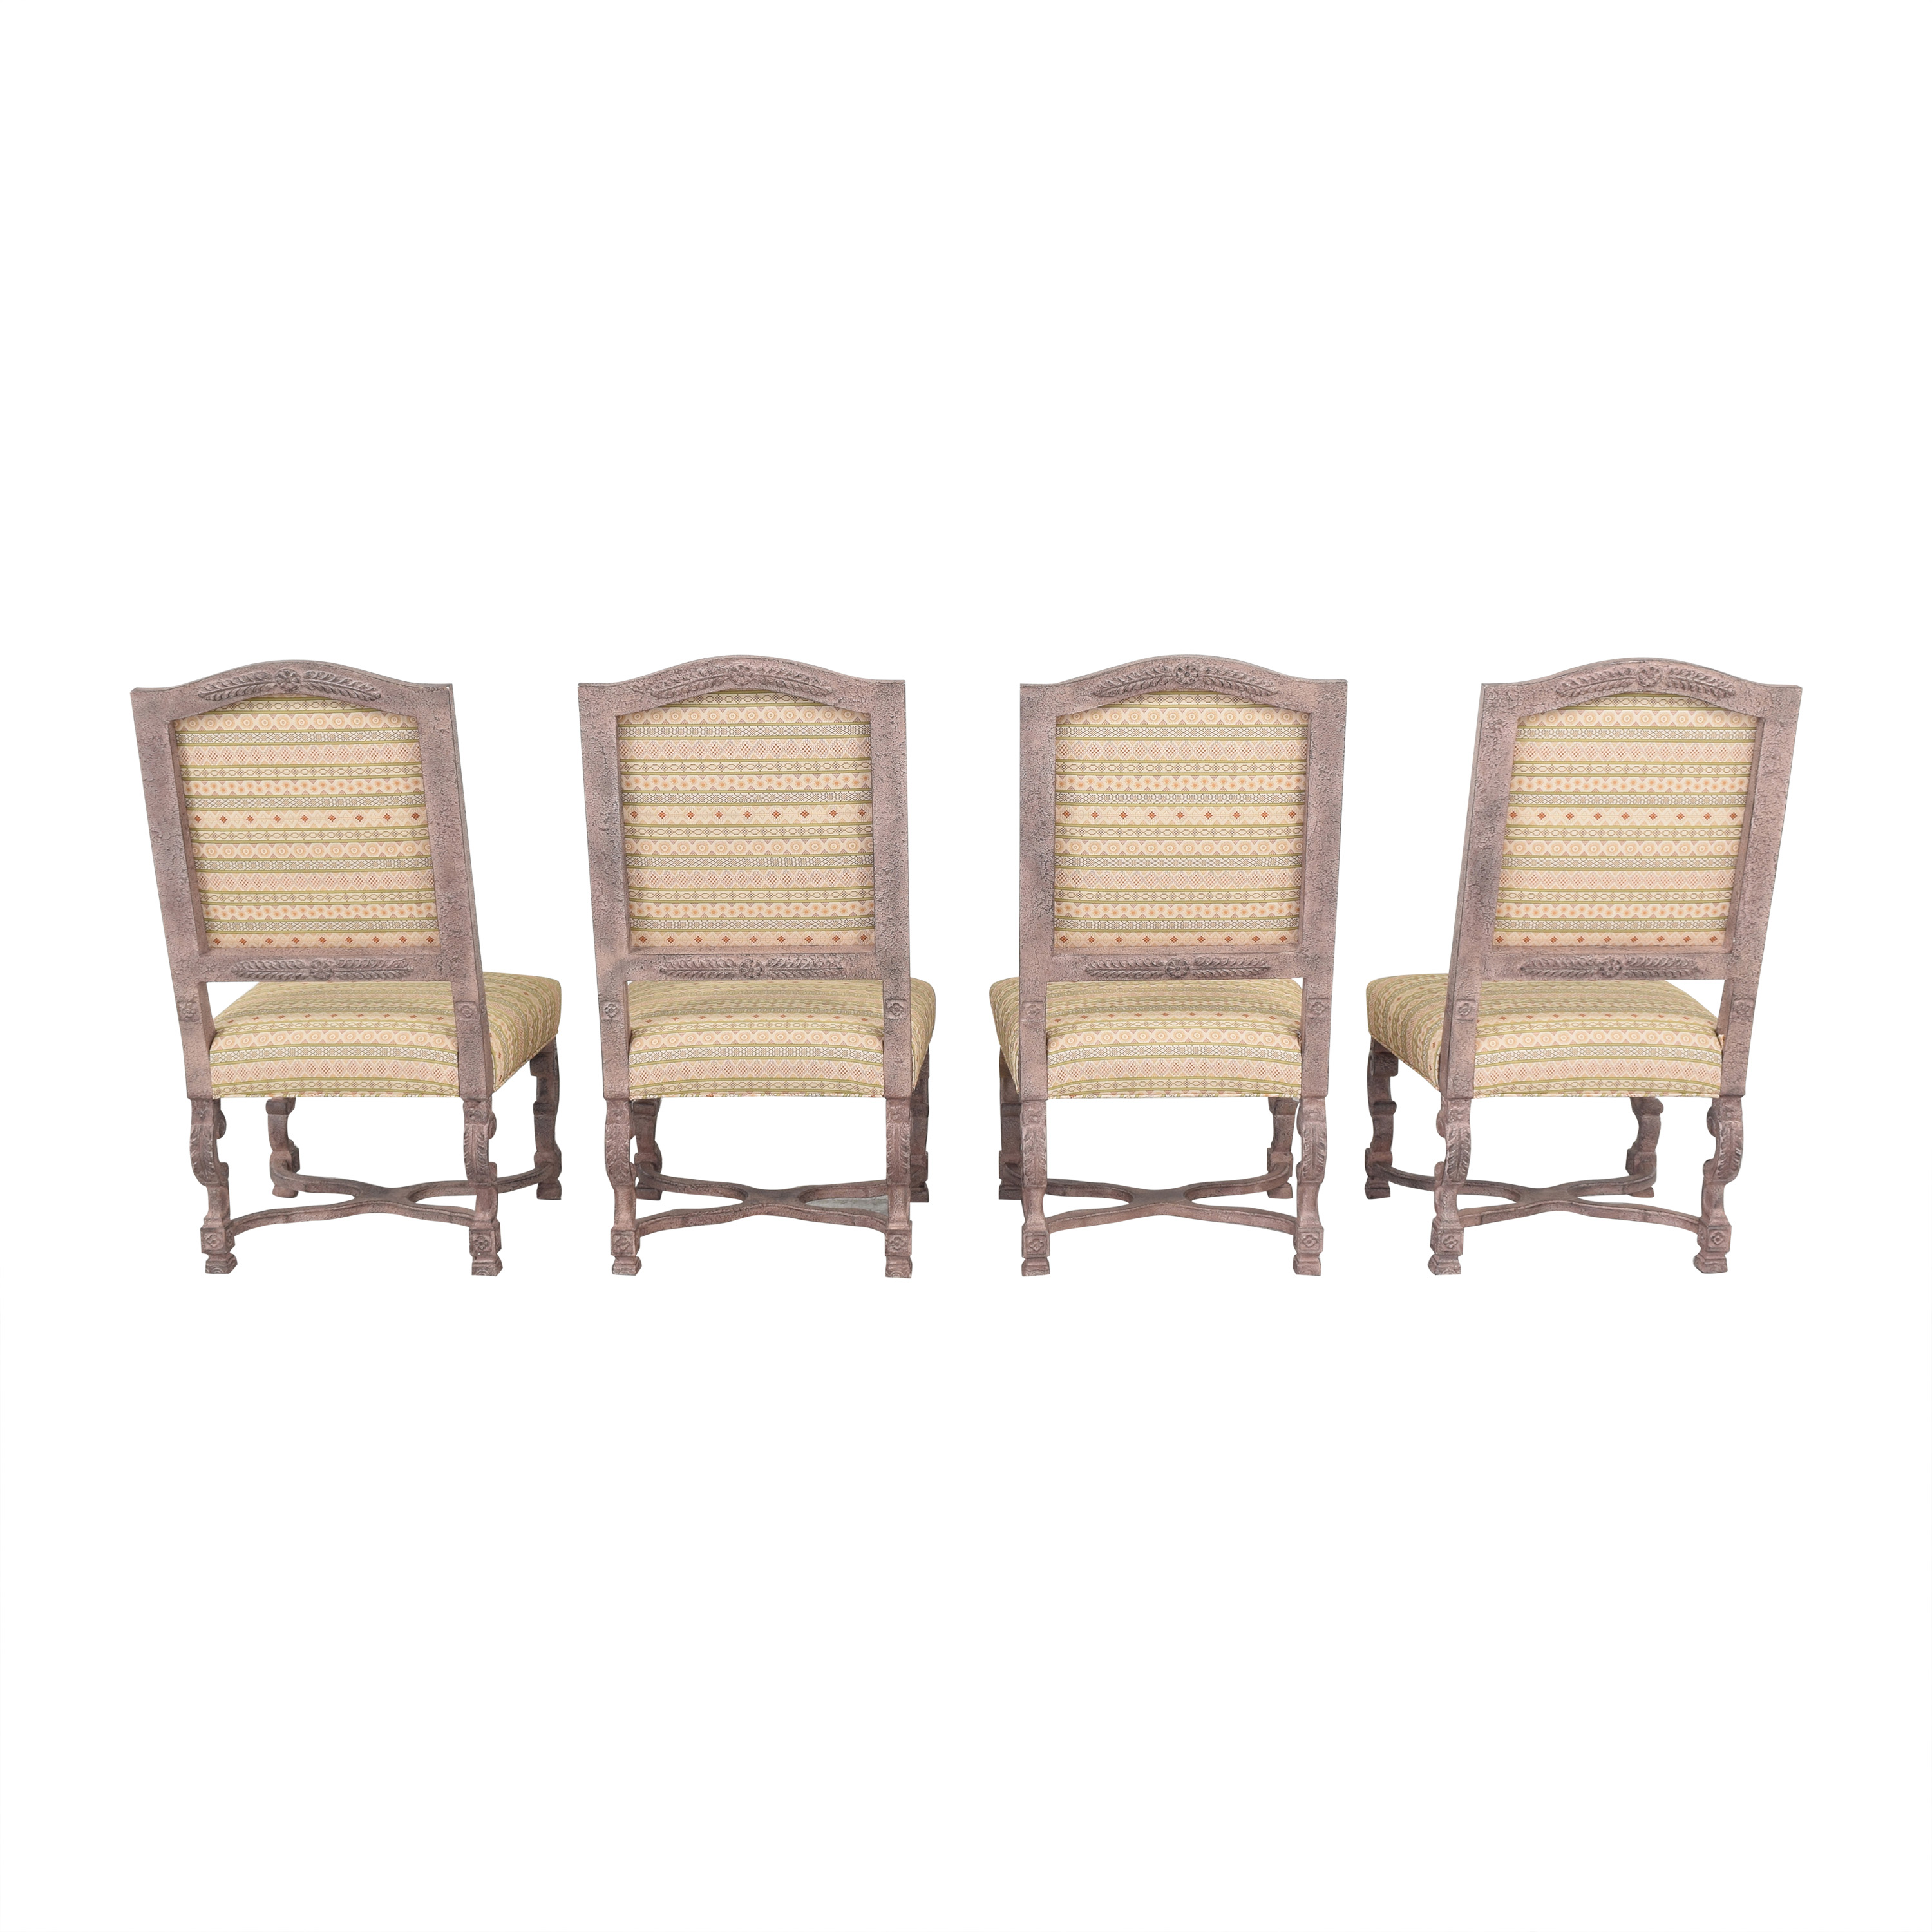 Artistic Frame Artistic Frame Monarque Dining Chairs on sale